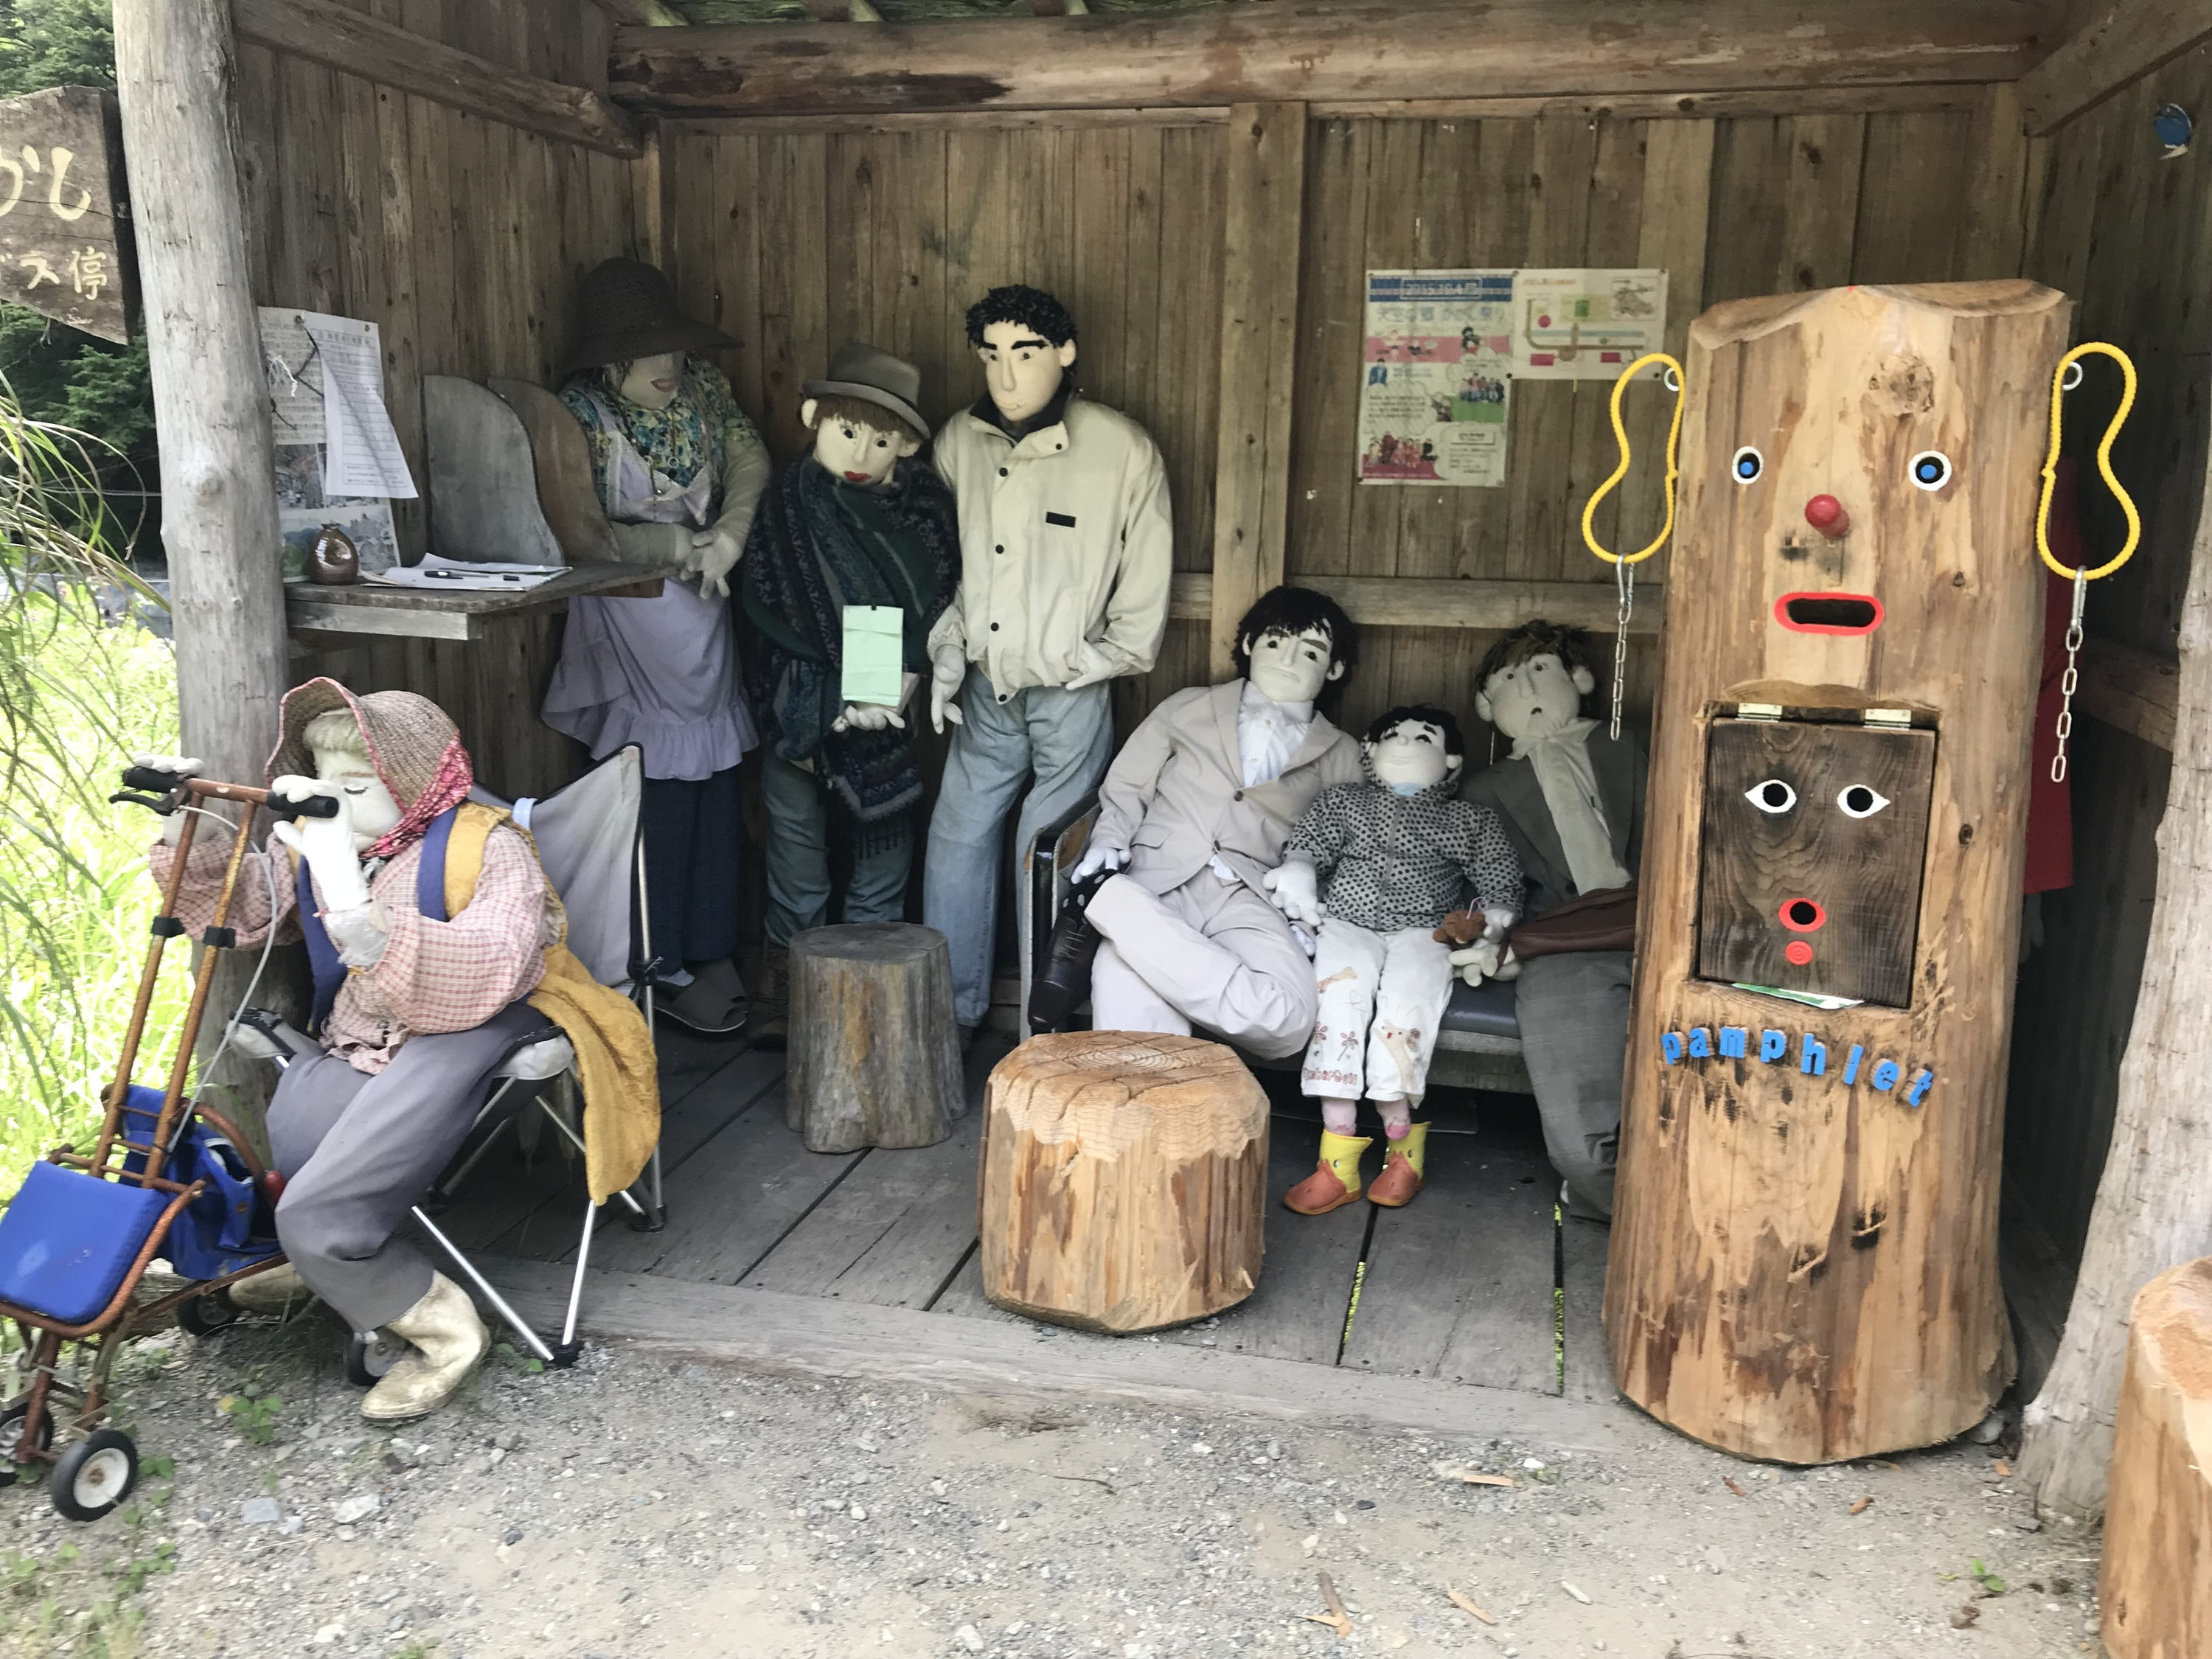 This town in Japan has more scarecrows than people